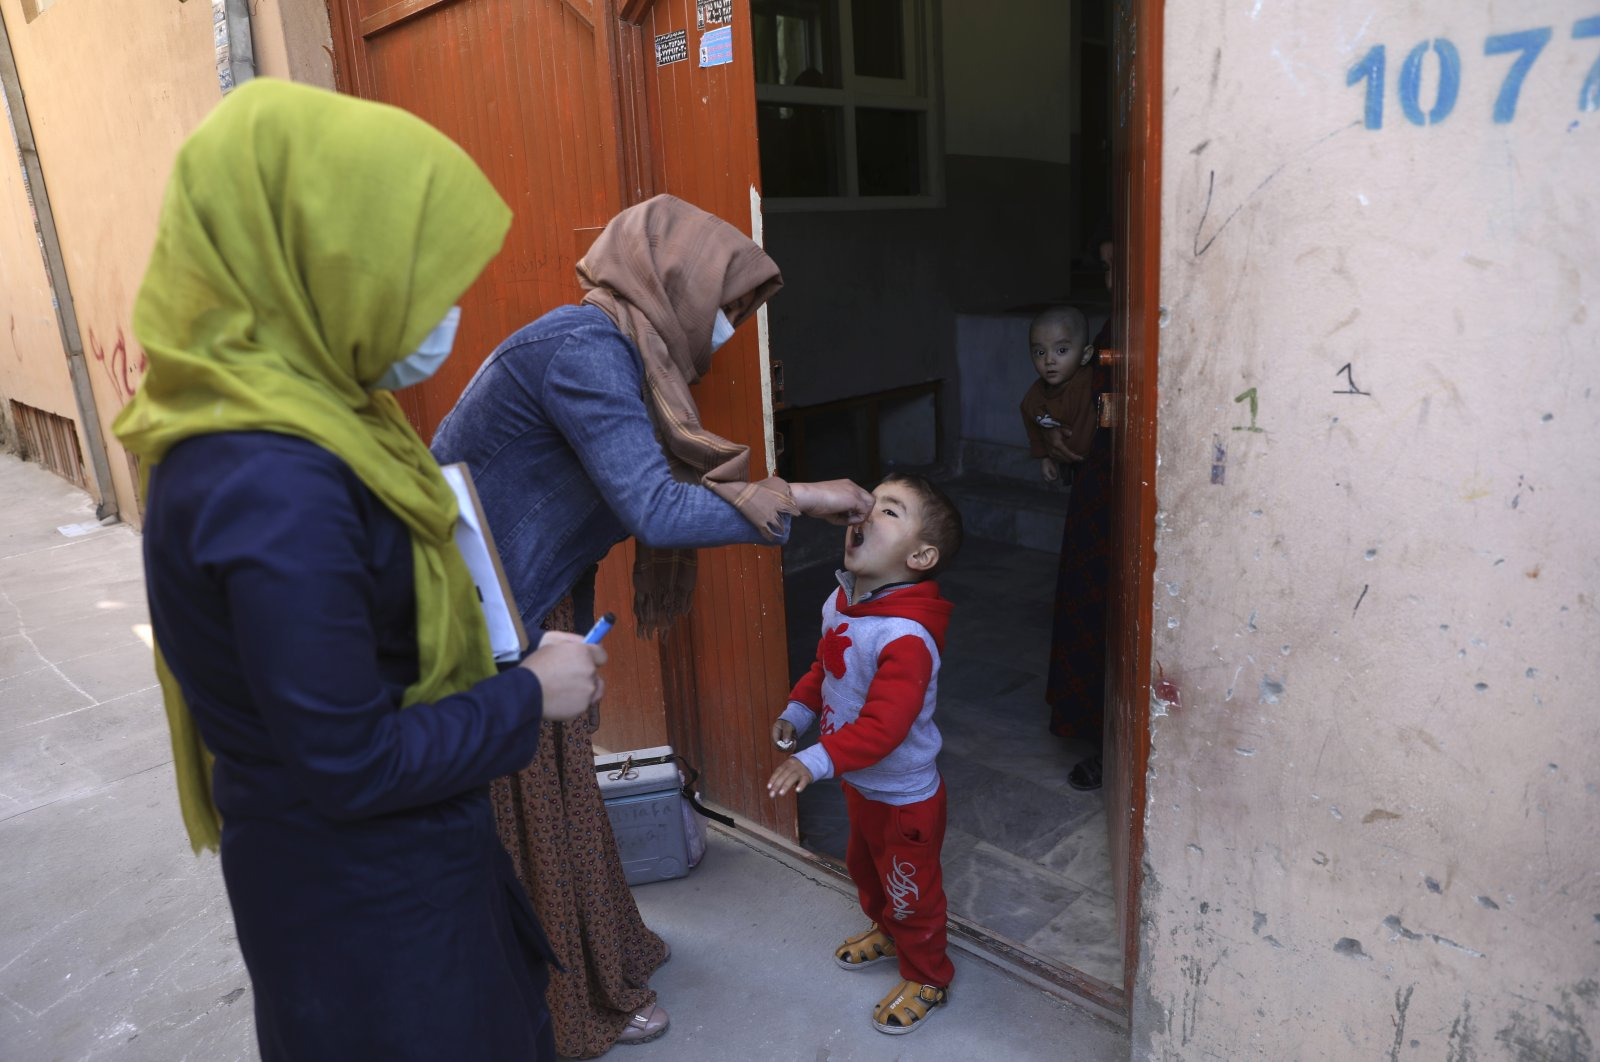 Health workers administer a polio vaccine to a child during a door-to-door polio vaccination campaign in the city of Kabul, Afghanistan, March 30, 2021. (AP Photo)